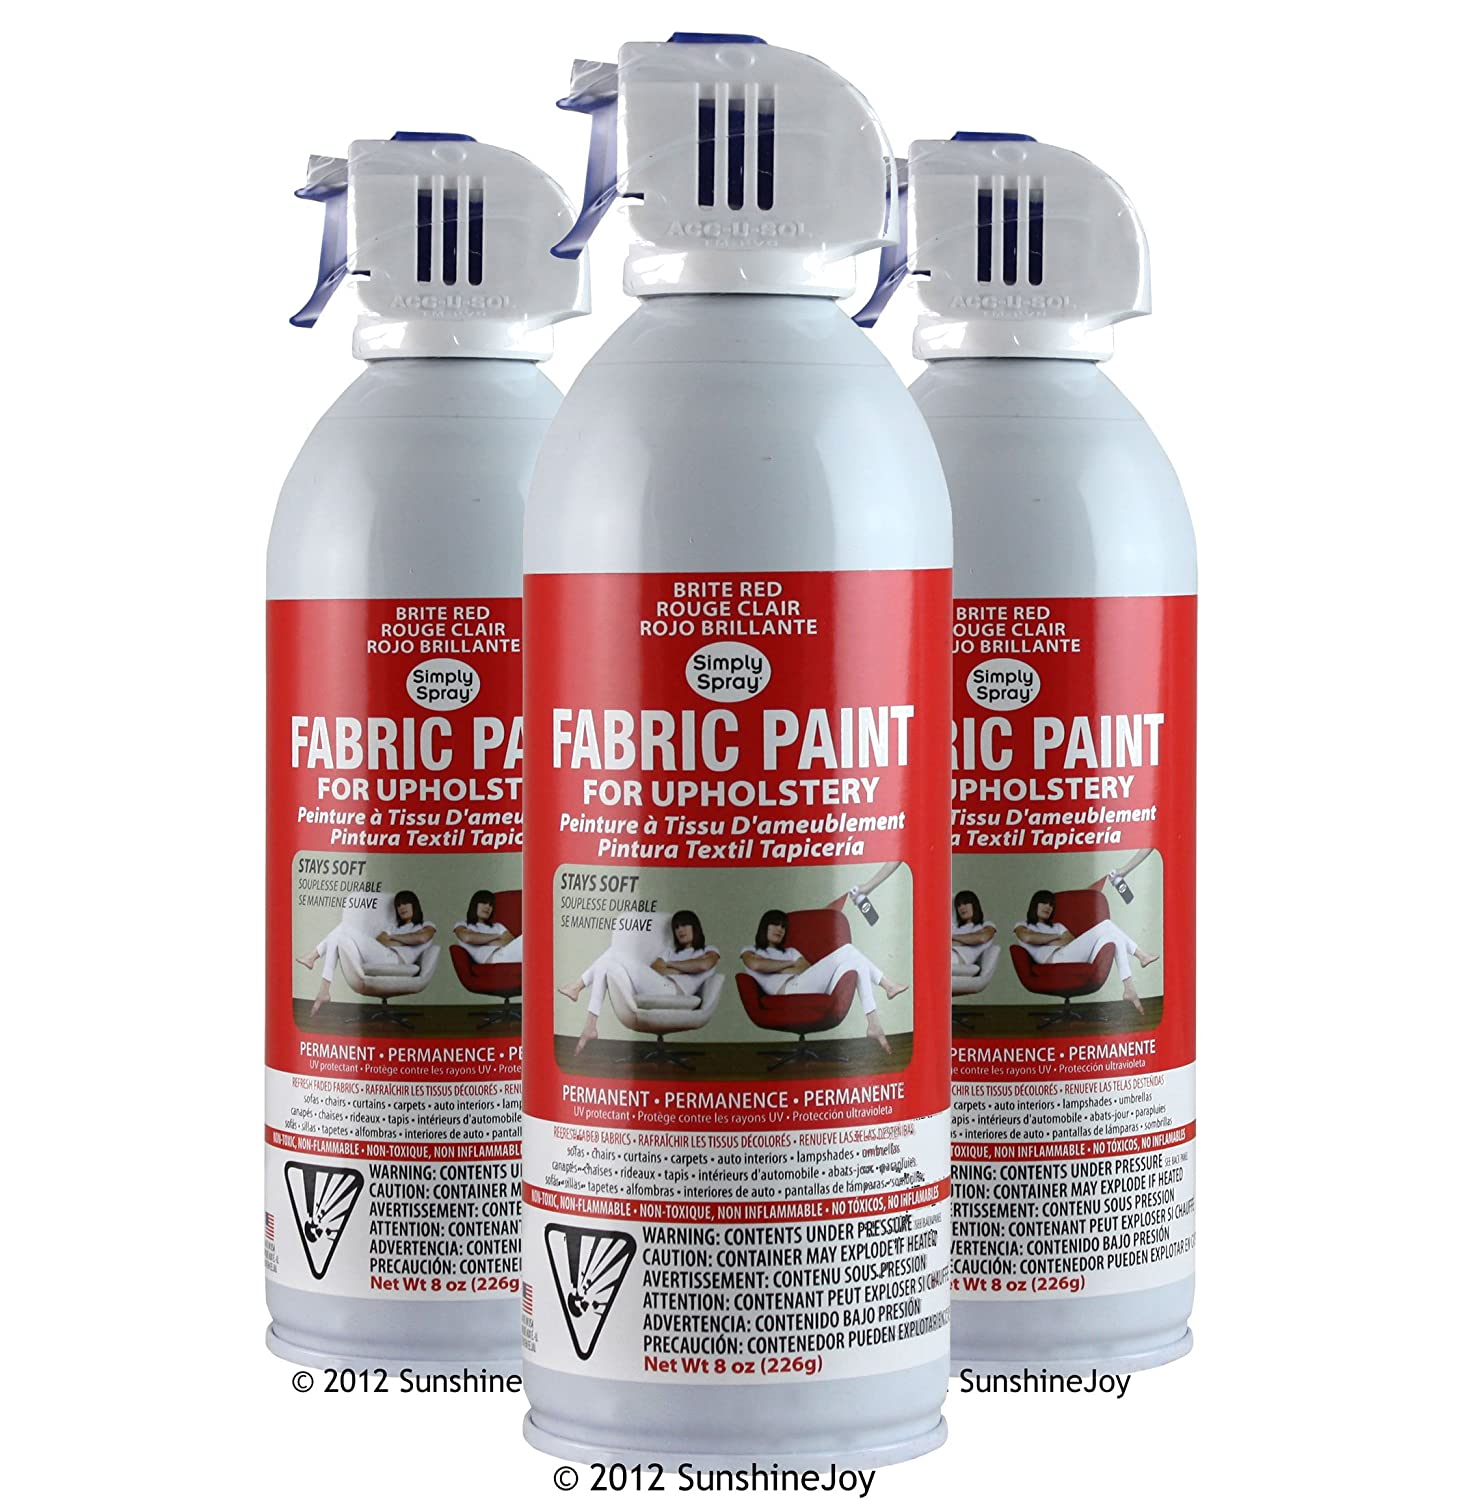 Simply Spray Upholstery Fabric Spray Paint 8 Oz. Can 3 Pack Brite Red - -  Amazon.com